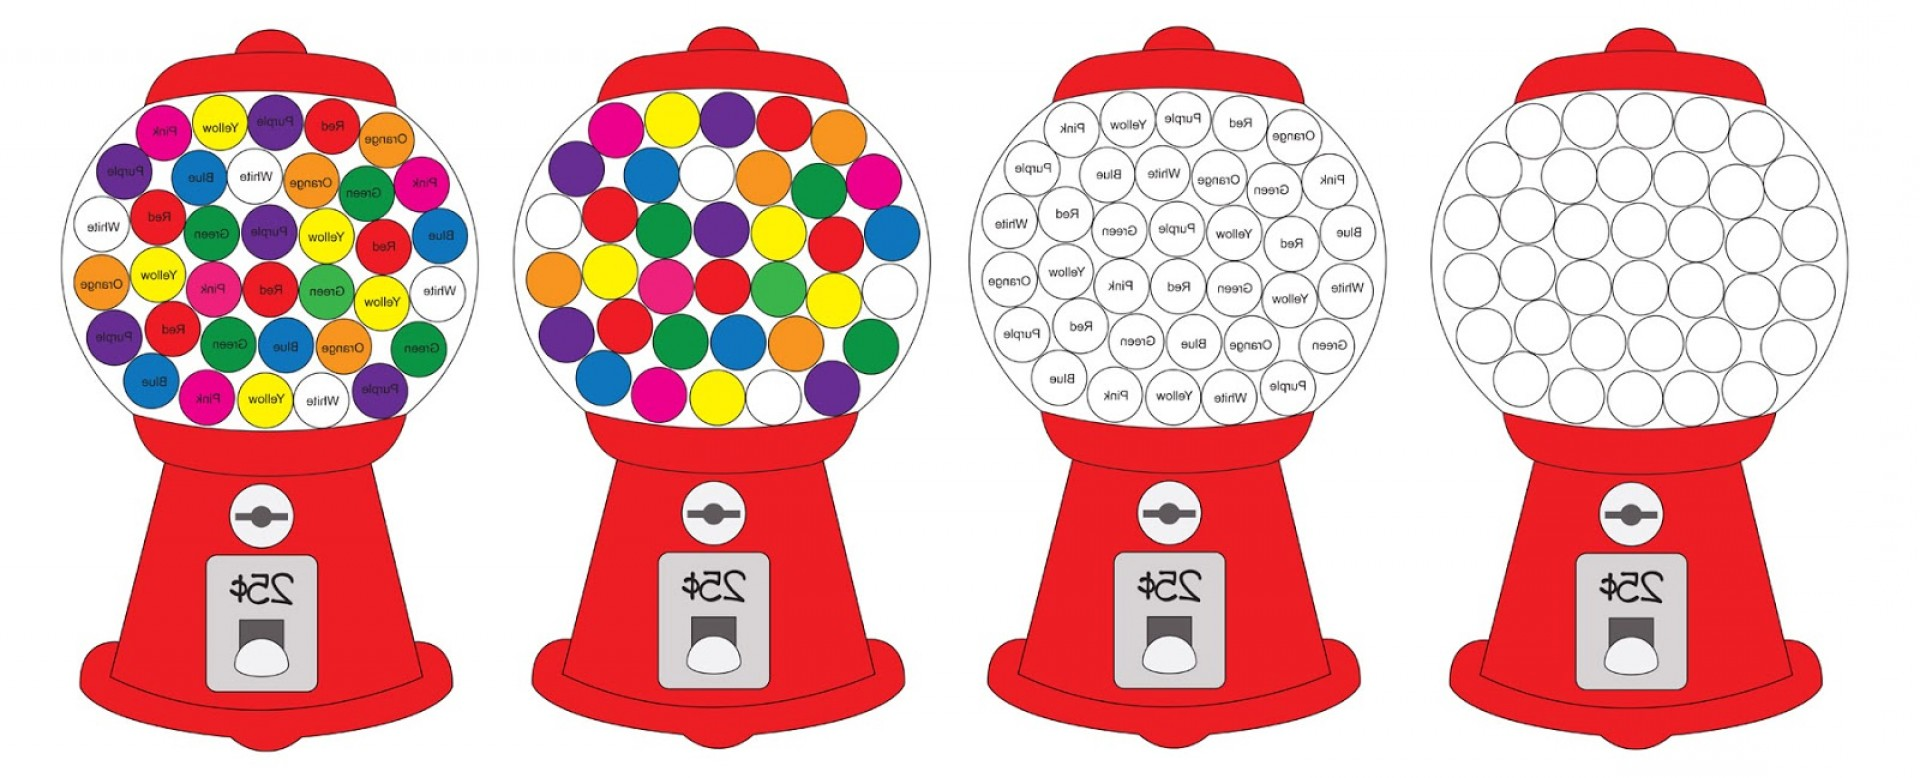 hight resolution of top gumball clip art black and white design